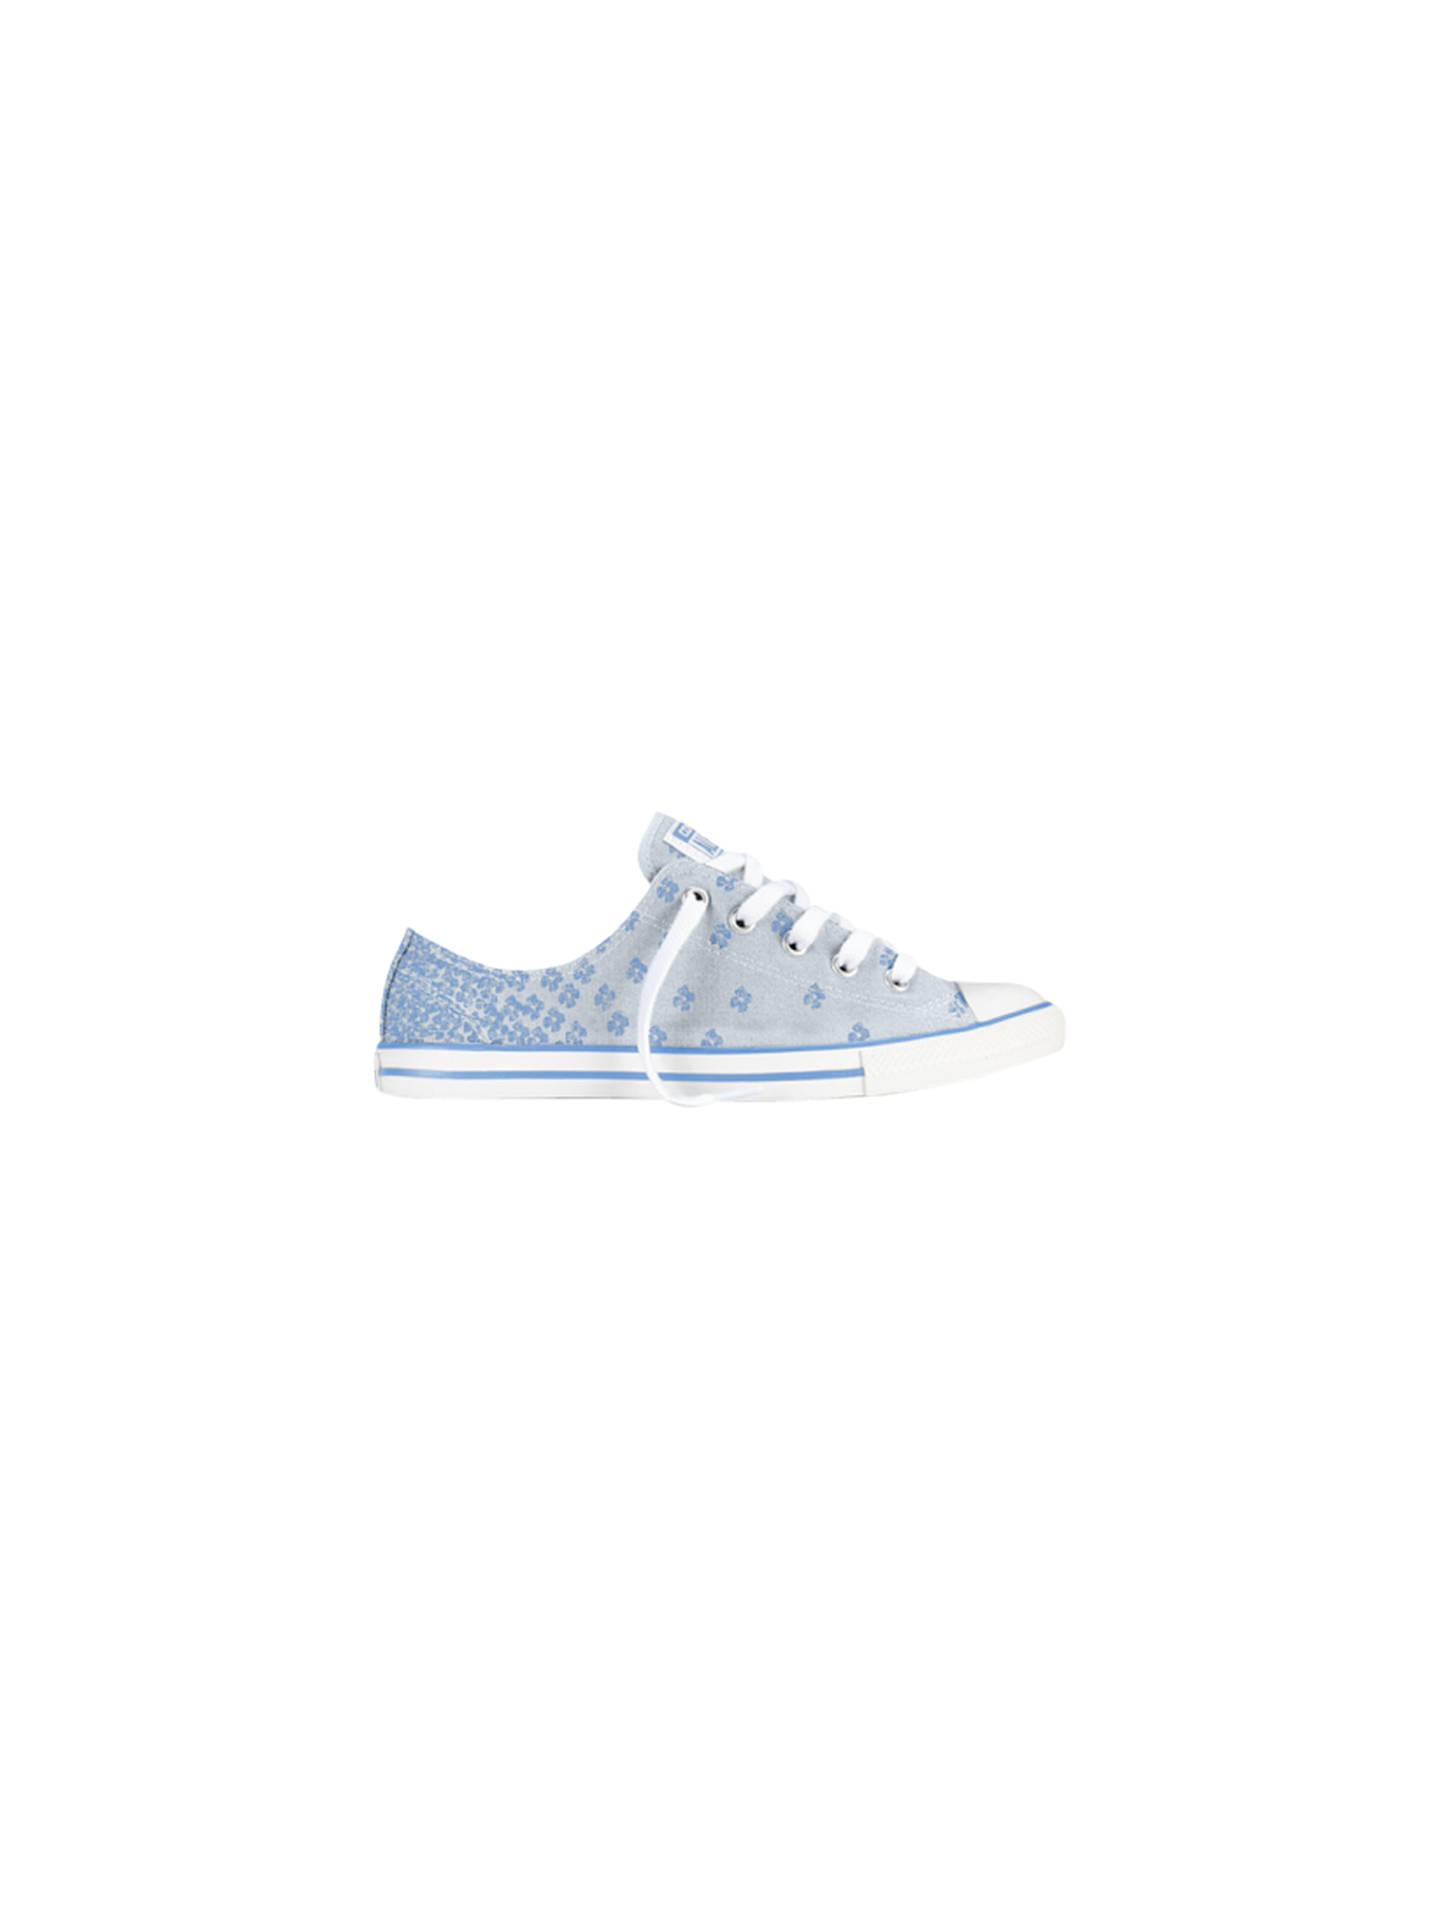 a836c1b53172 Buy Converse Chuck Taylor All Star Ox Dainty Canvas Trainers